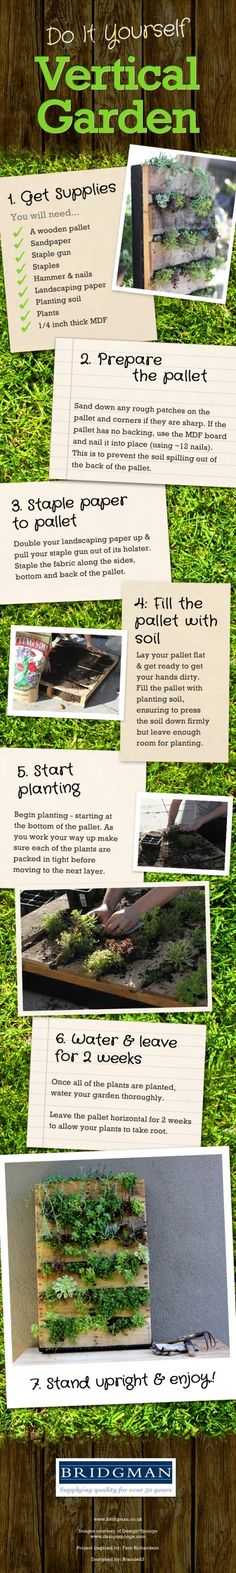 Green is Free: 15 Creative things to do with Pallets. {Photos}   elephant journal